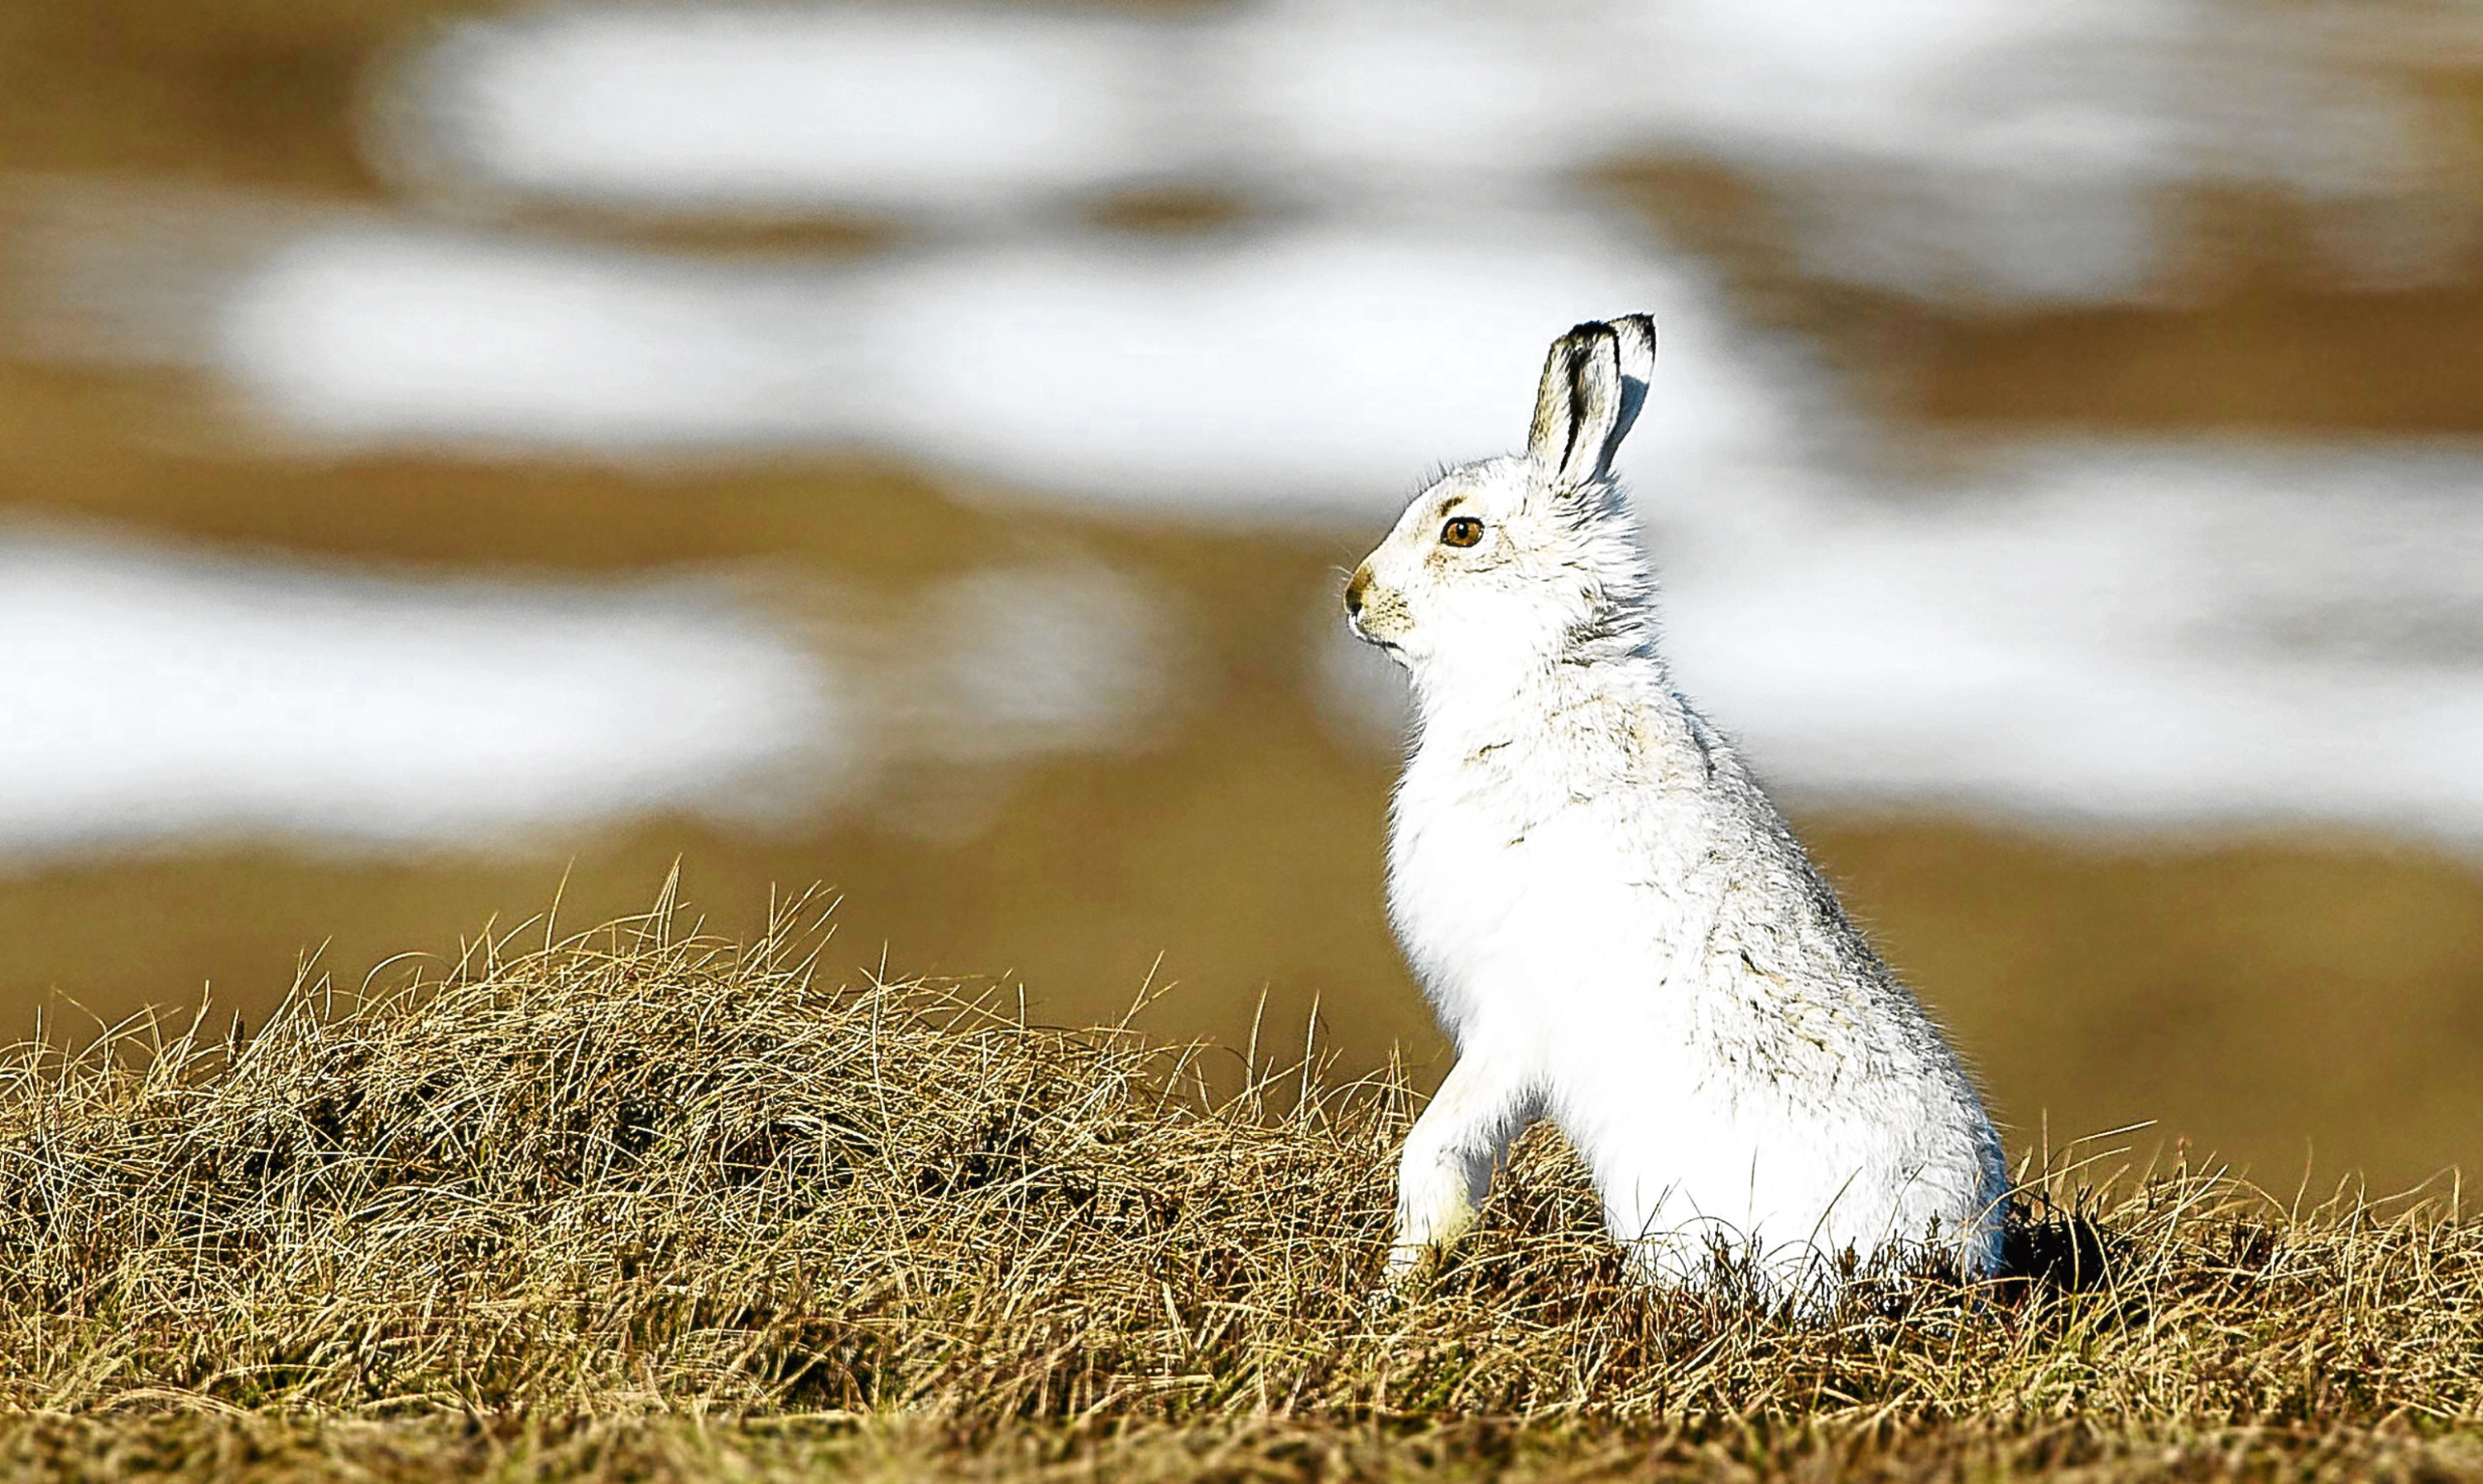 A mountain hare photographed on moorland in Scotland.